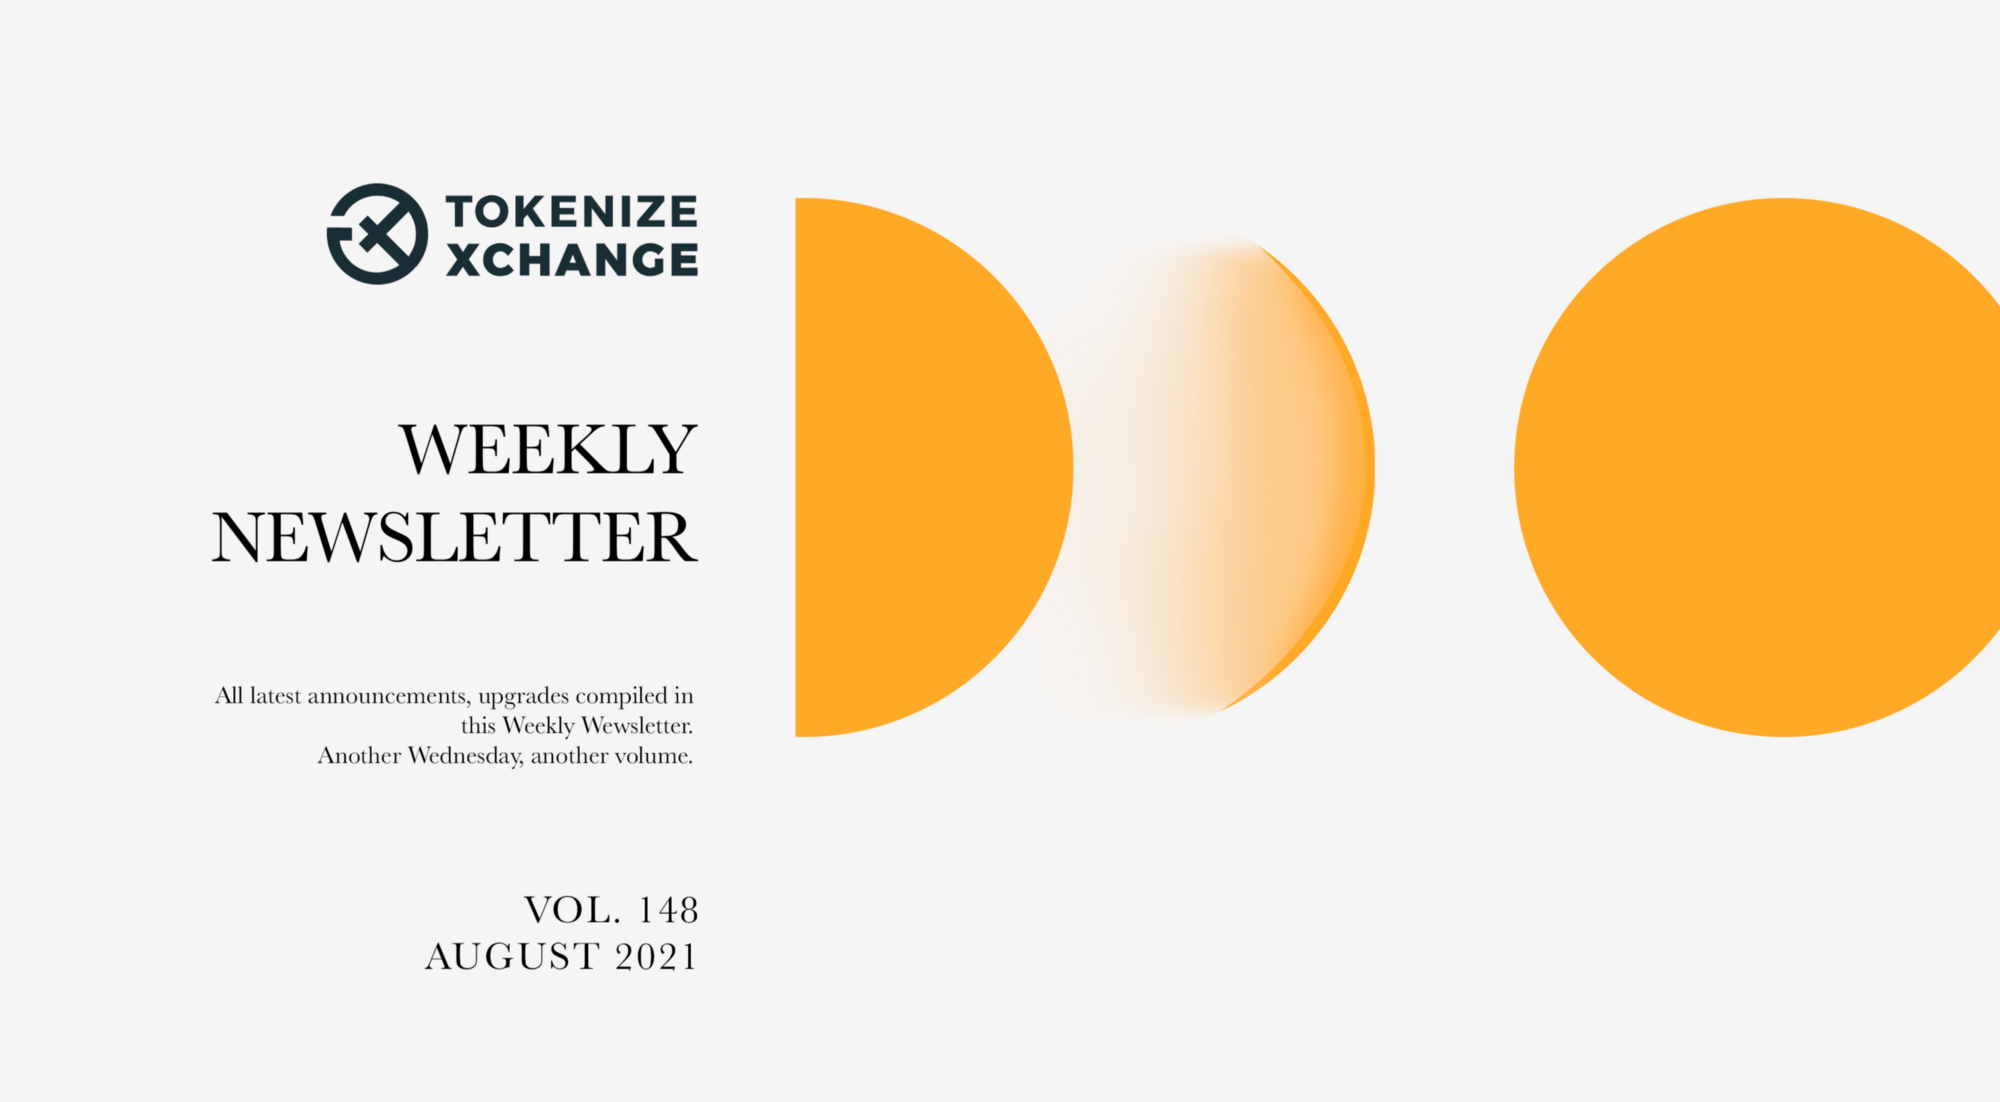 The Newsletter by Tokenize Xchange (Vol.148| Aug 2021)